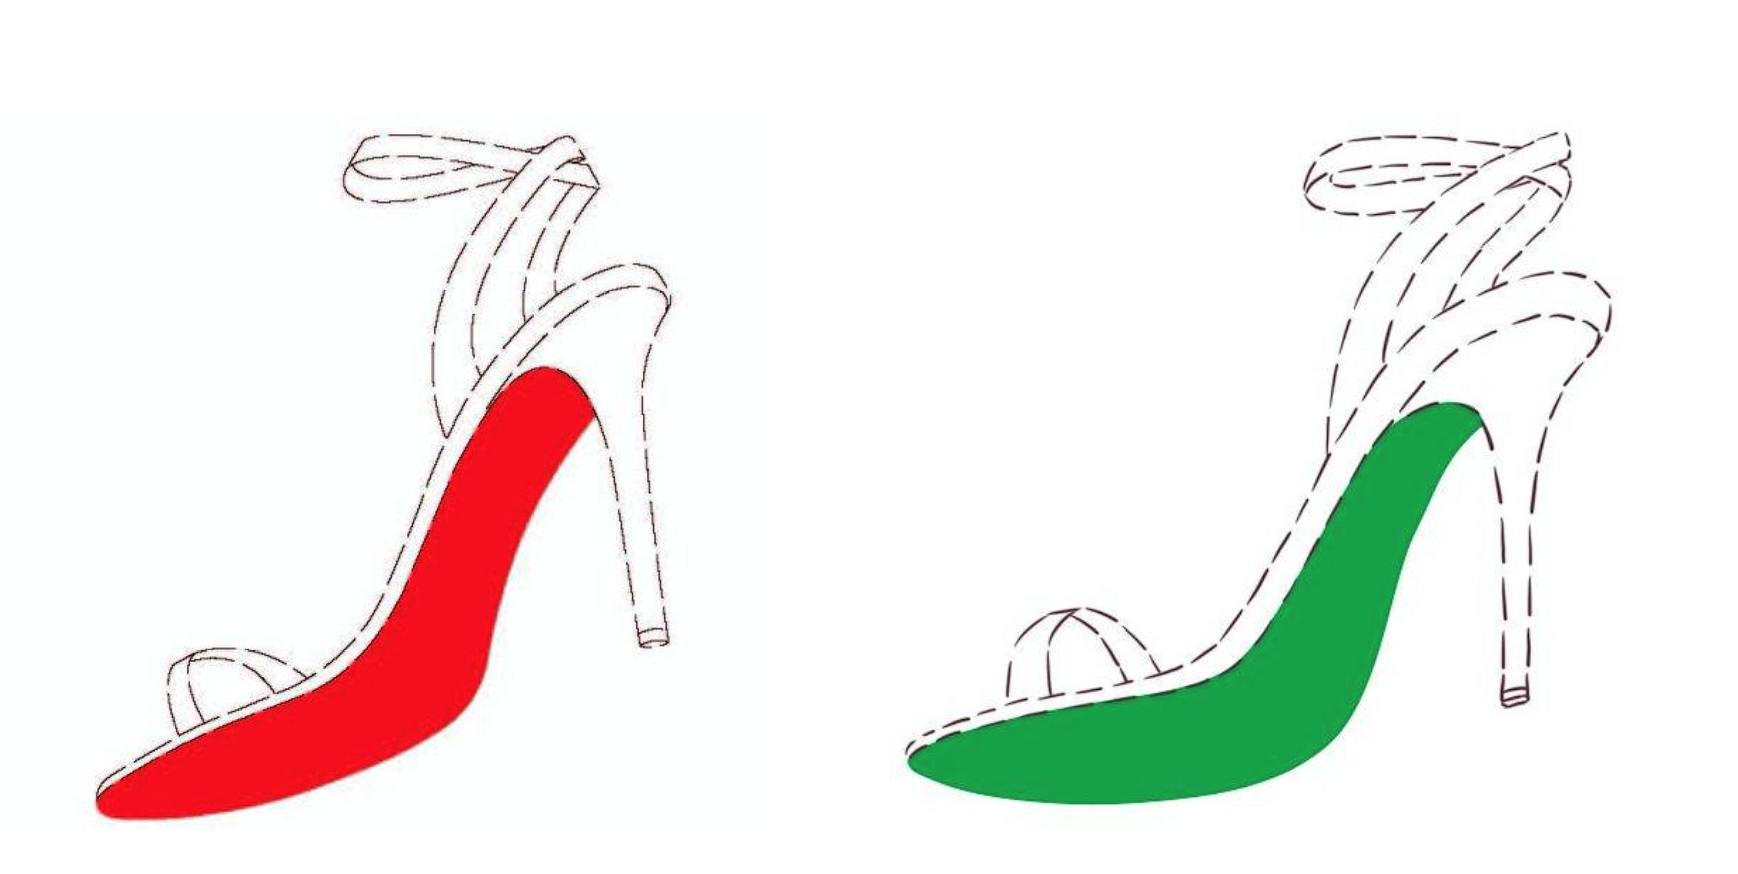 Louboutin's trademark drawing (left) & Bendolph's trademark drawing (right)